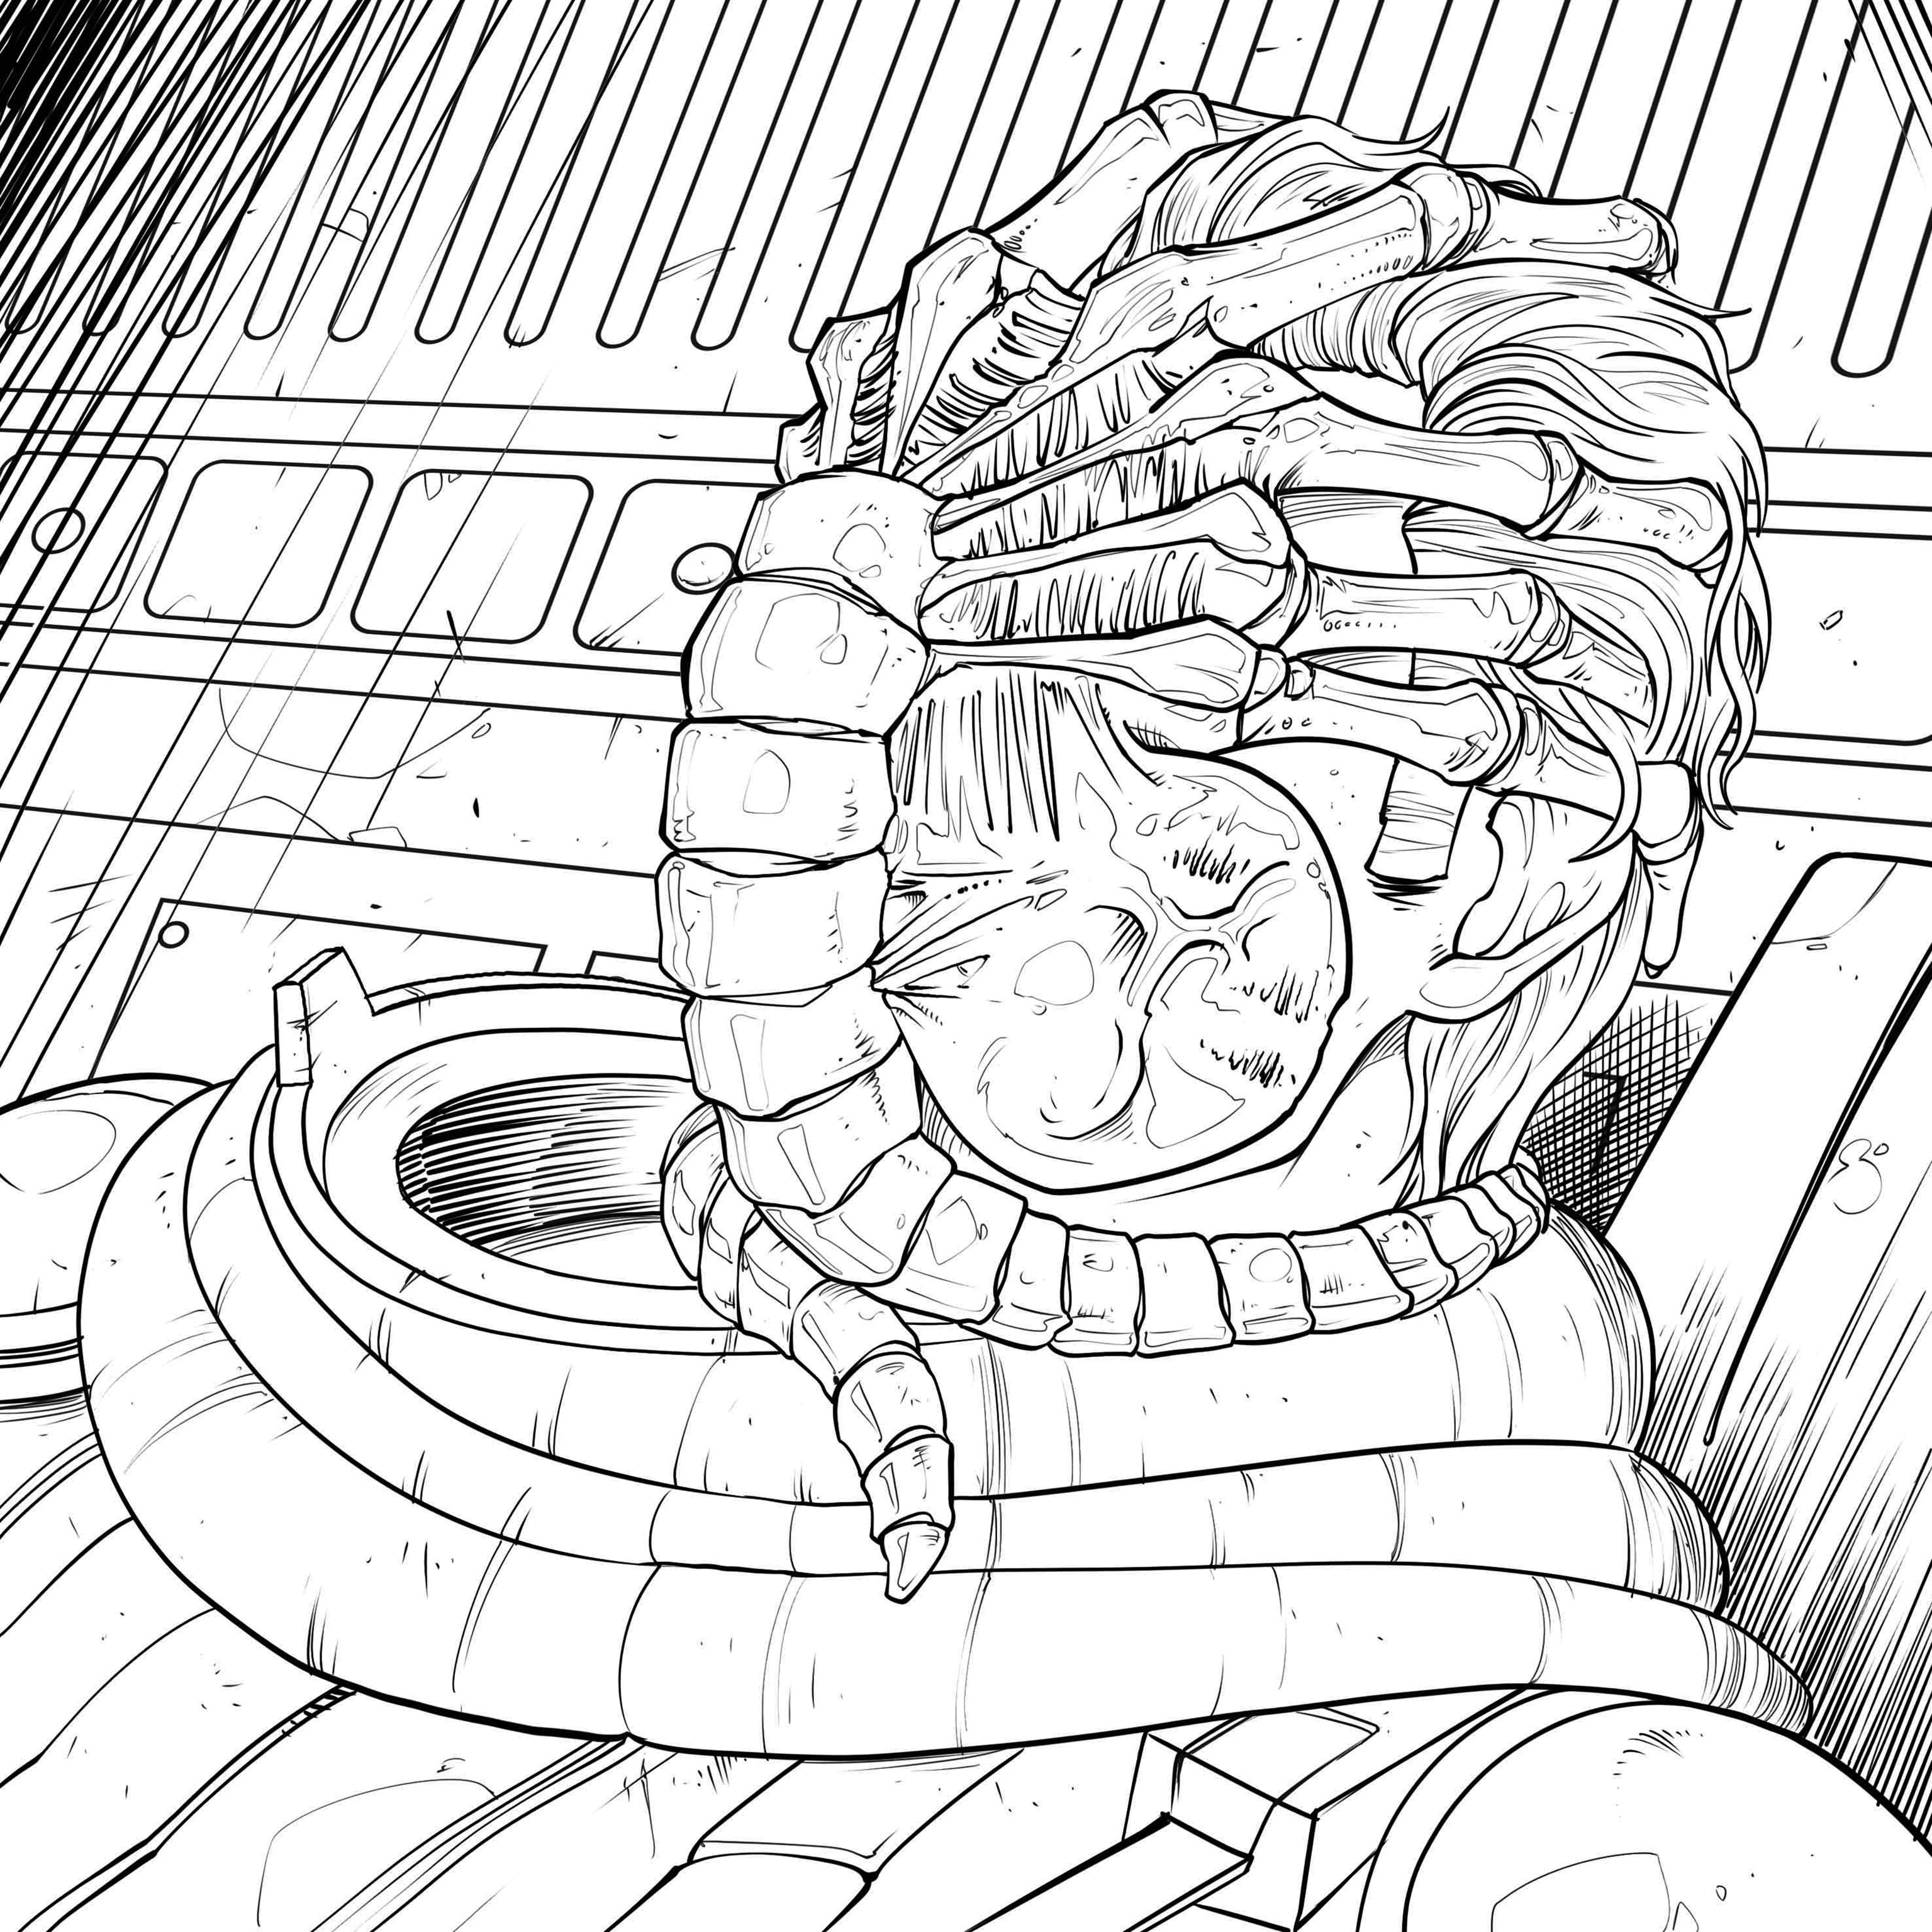 trippy alien coloring pages coloring pages coloring pages clip art on coloring alien trippy coloring pages